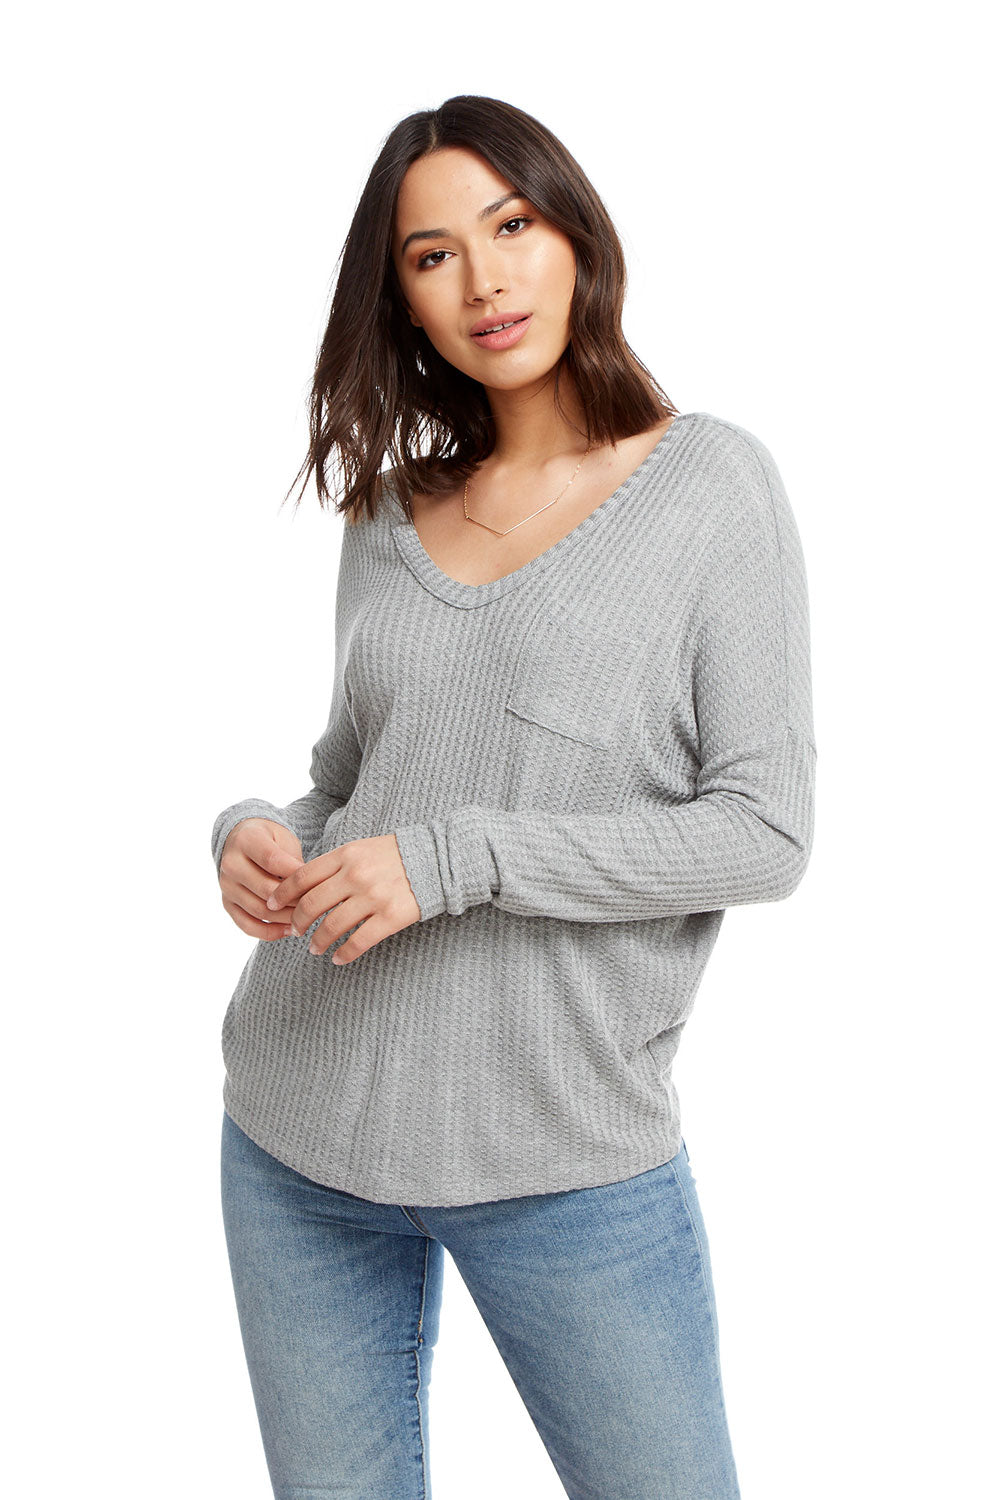 Thermal Long Sleeve Double V Drop Shoulder Pocket Tee, WOMENS, chaserbrand.com,chaser clothing,chaser apparel,chaser los angeles